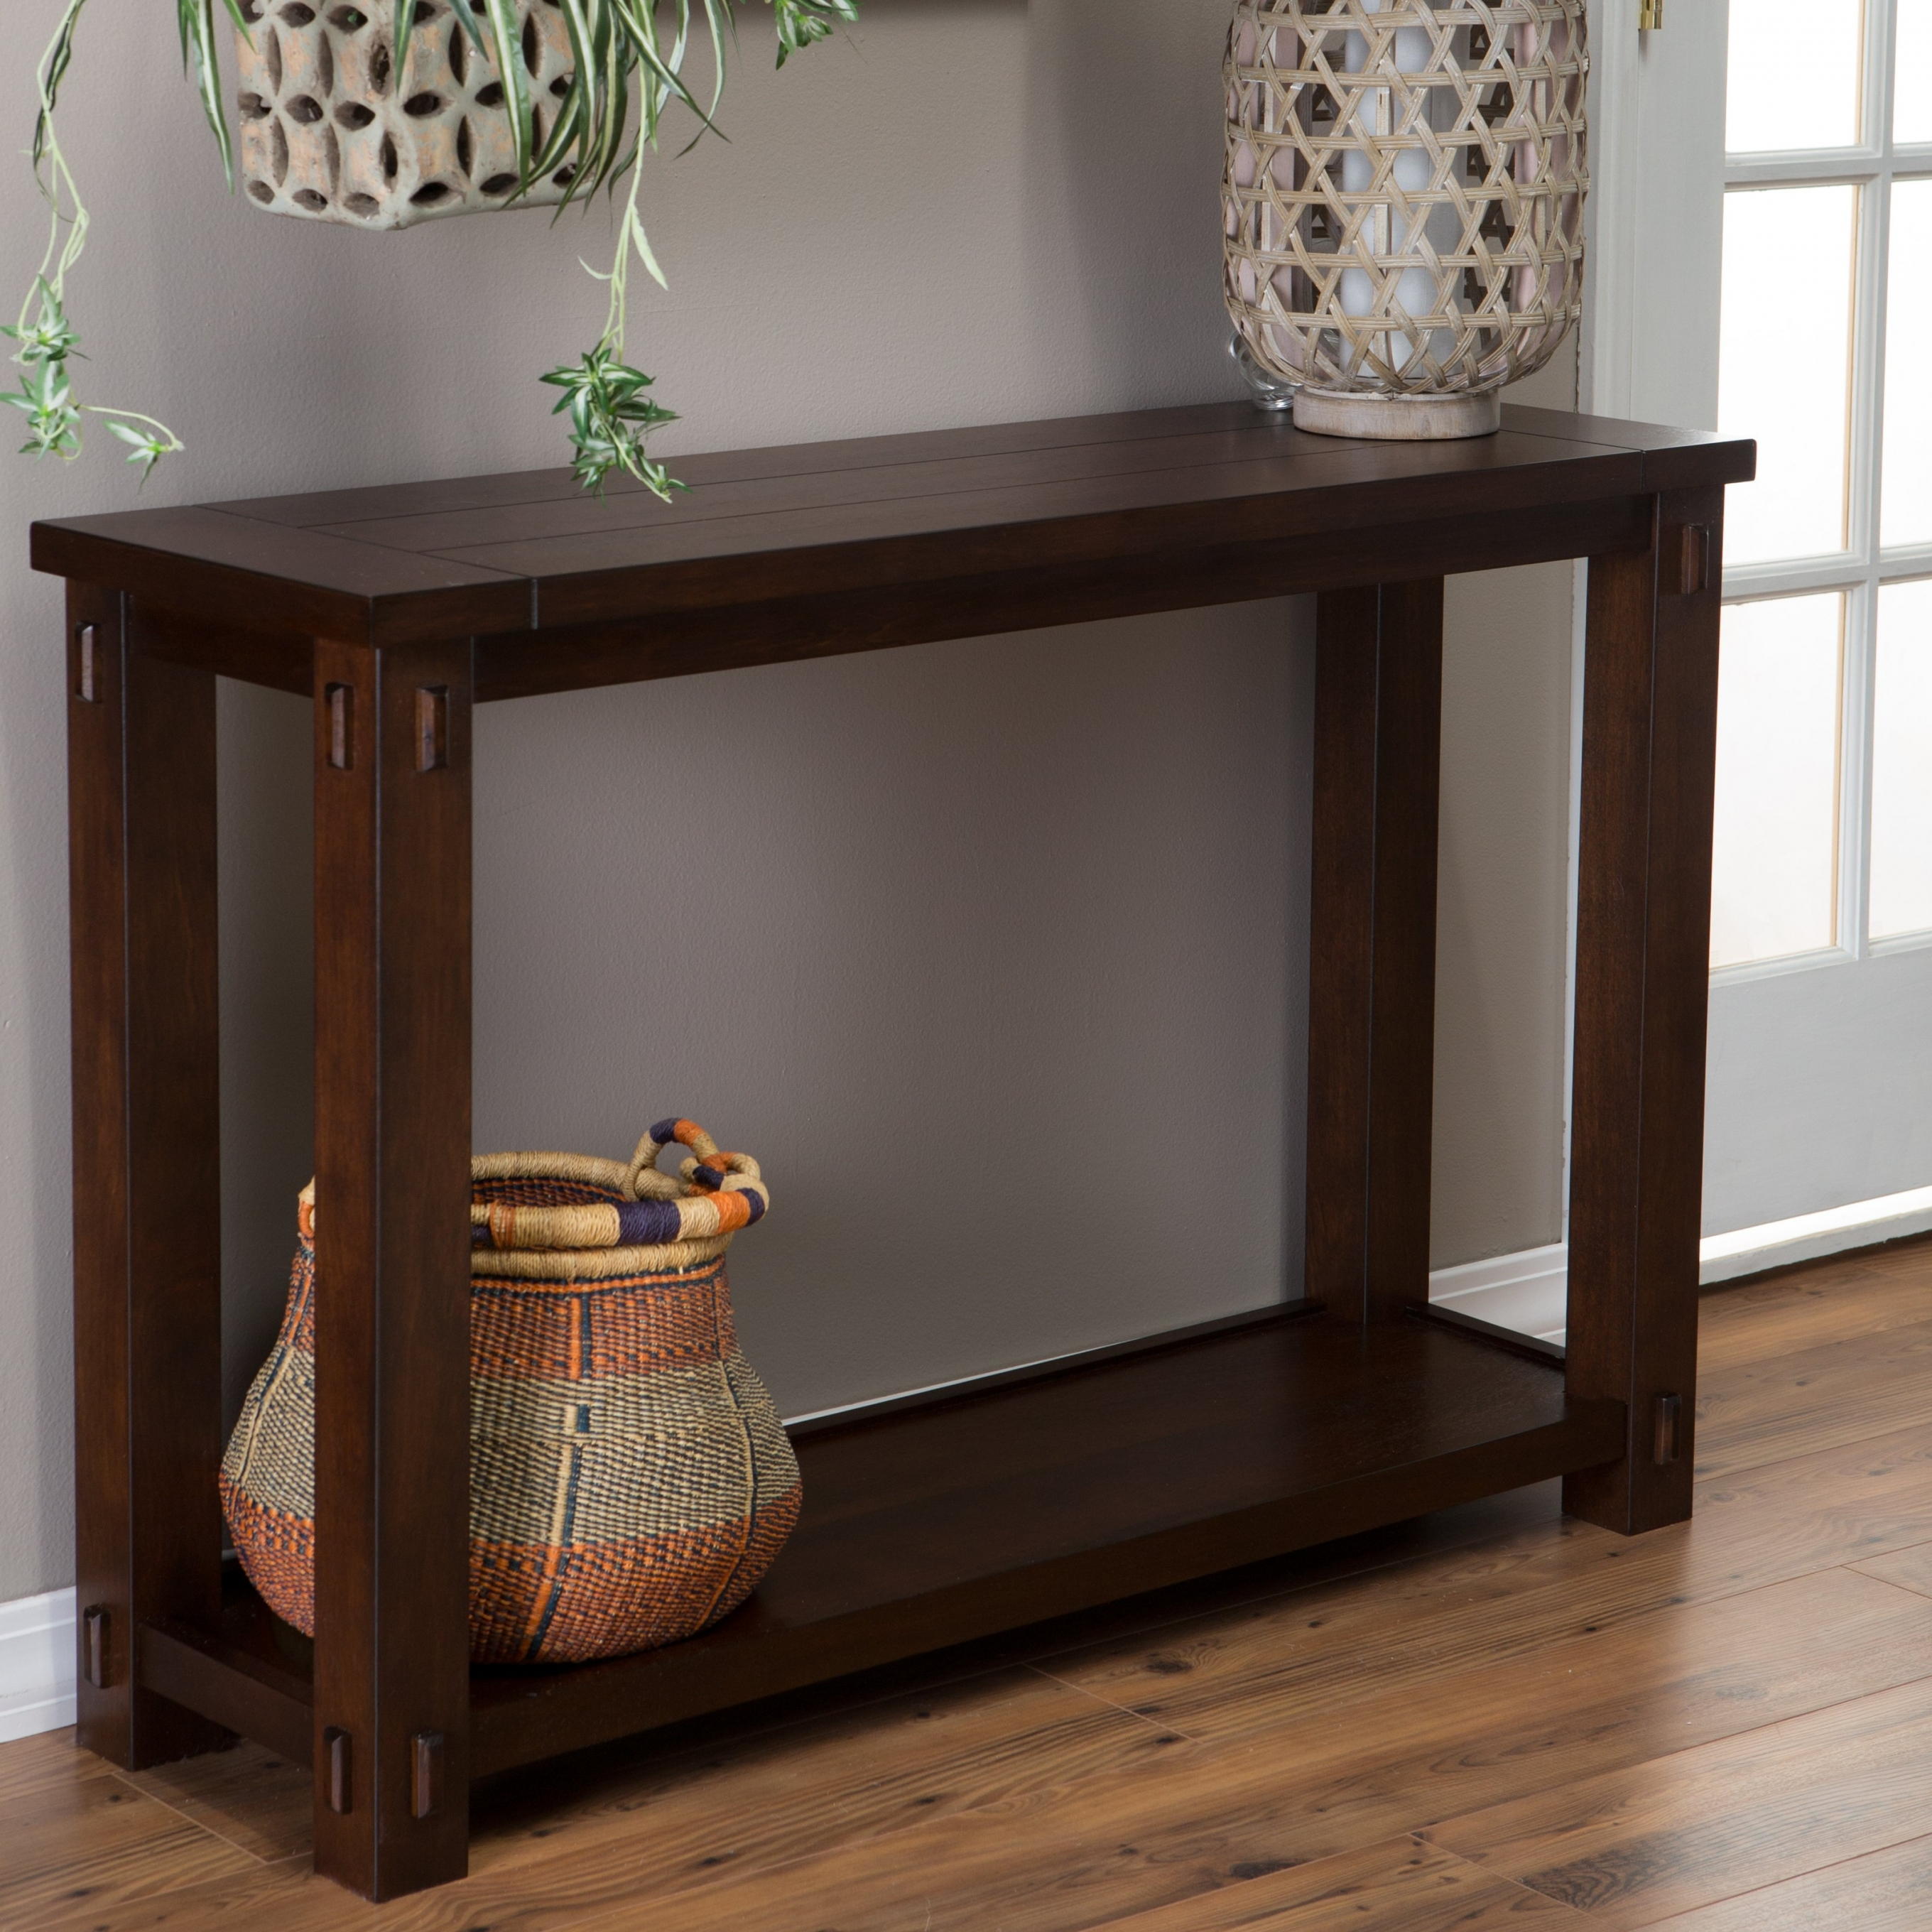 furniture outstanding britanish skinny console table for livingroom flooring accent tables narrow entry with drawers hallway tall sofa ultra slim coffee ideas small spaces woven